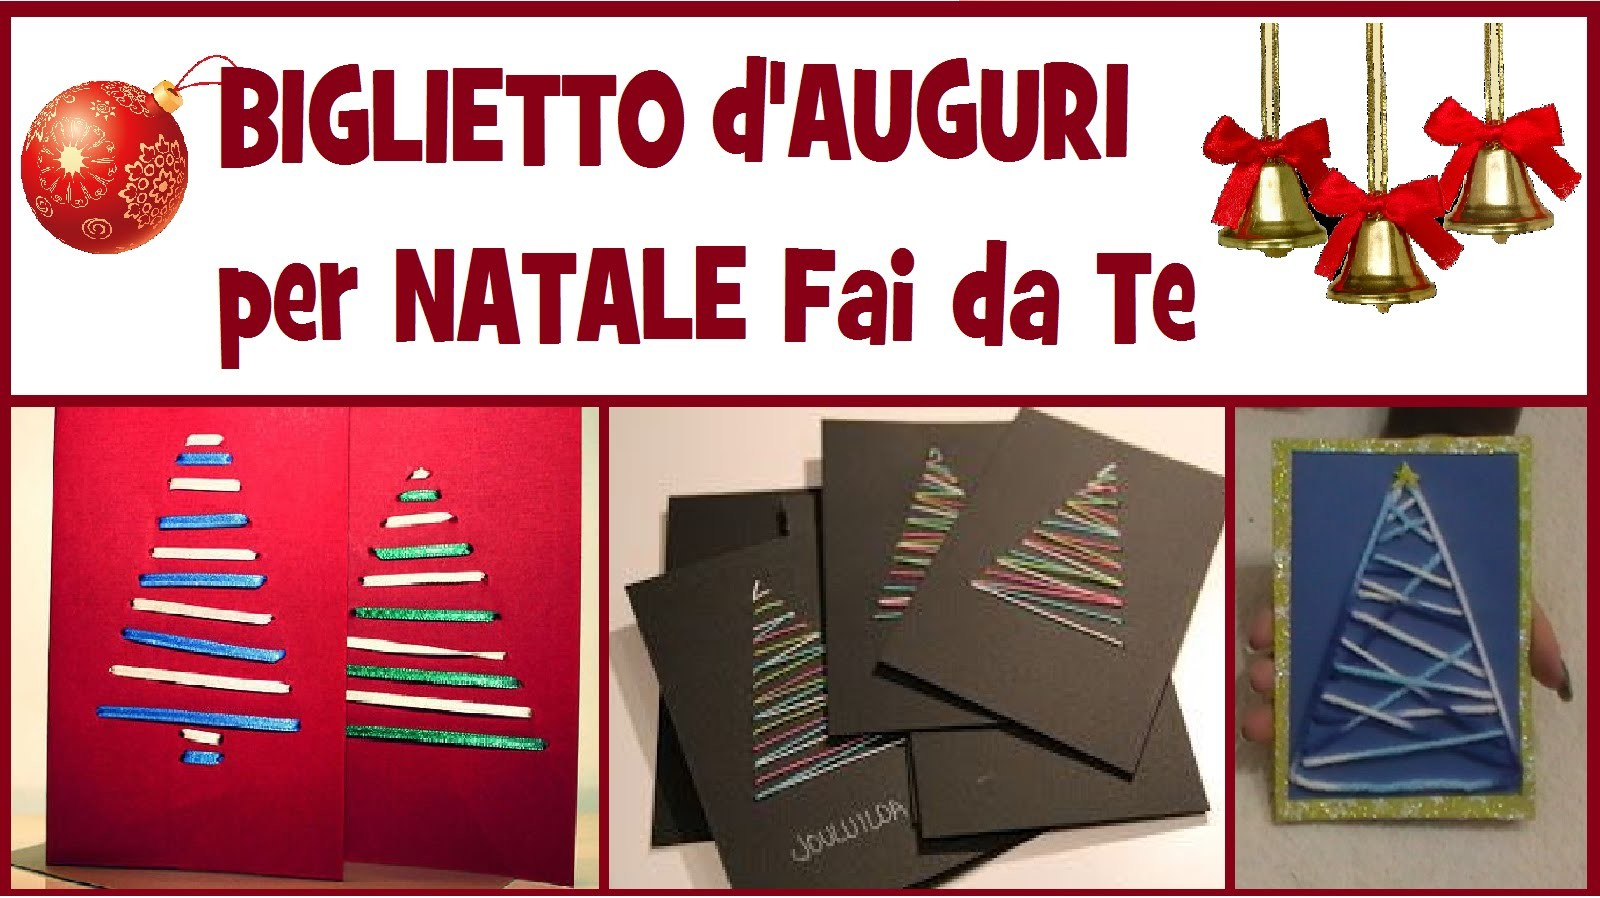 Biglietto d'Auguri per Natale Fai da Te - DIY CHRISTMAS GREETINGS CARD